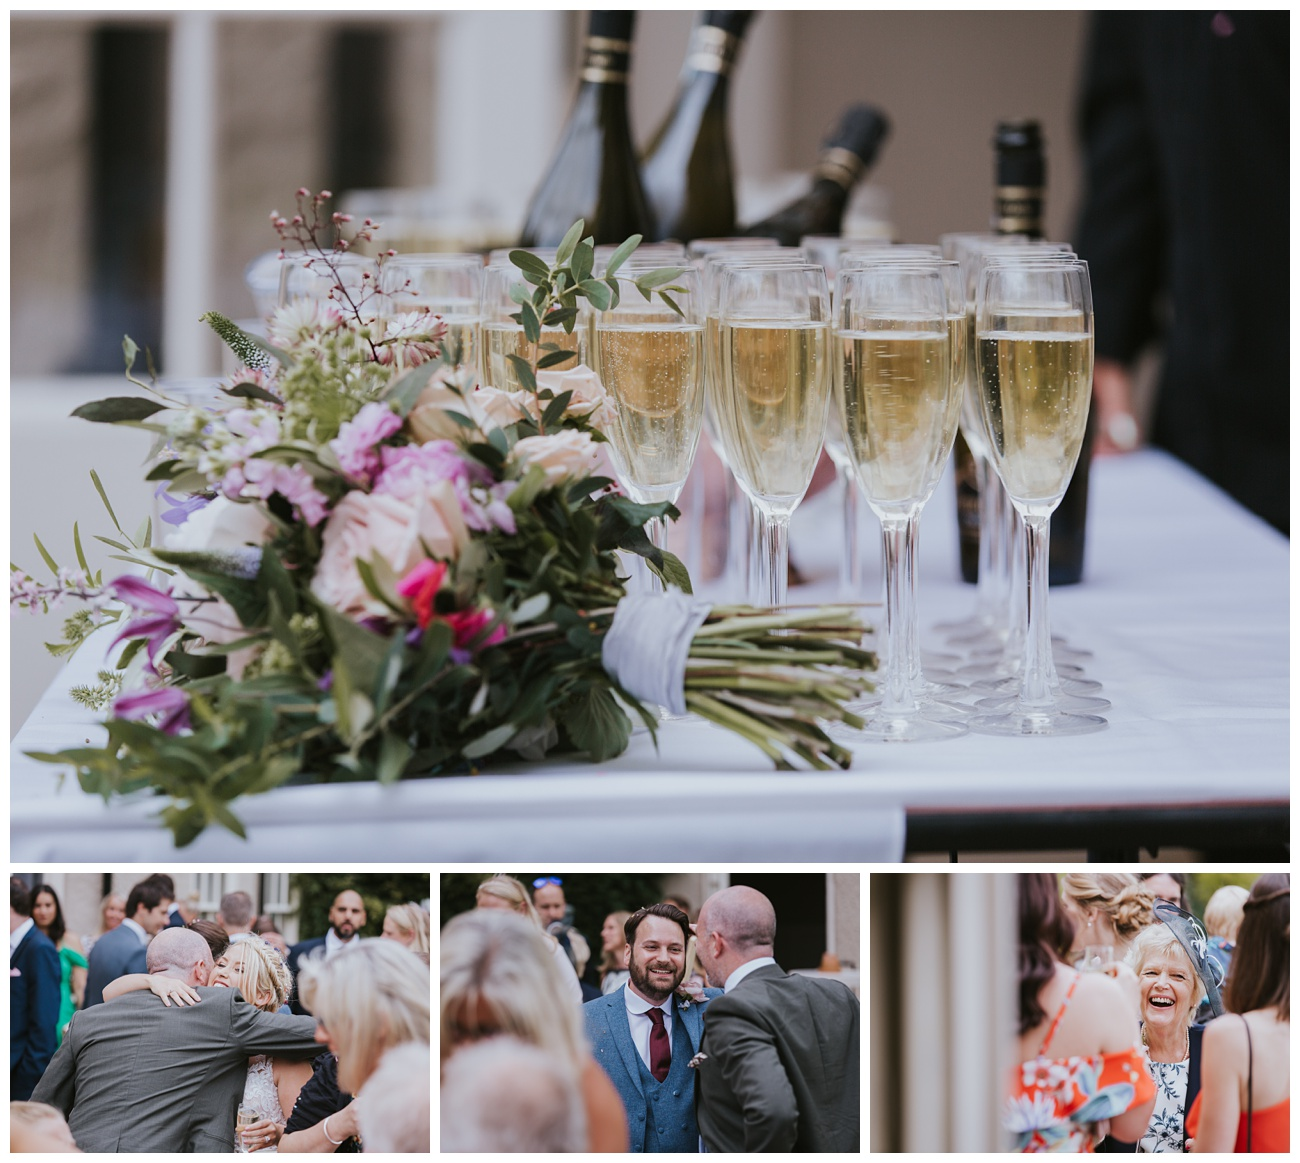 Drinks and guests laughing after the ceremony